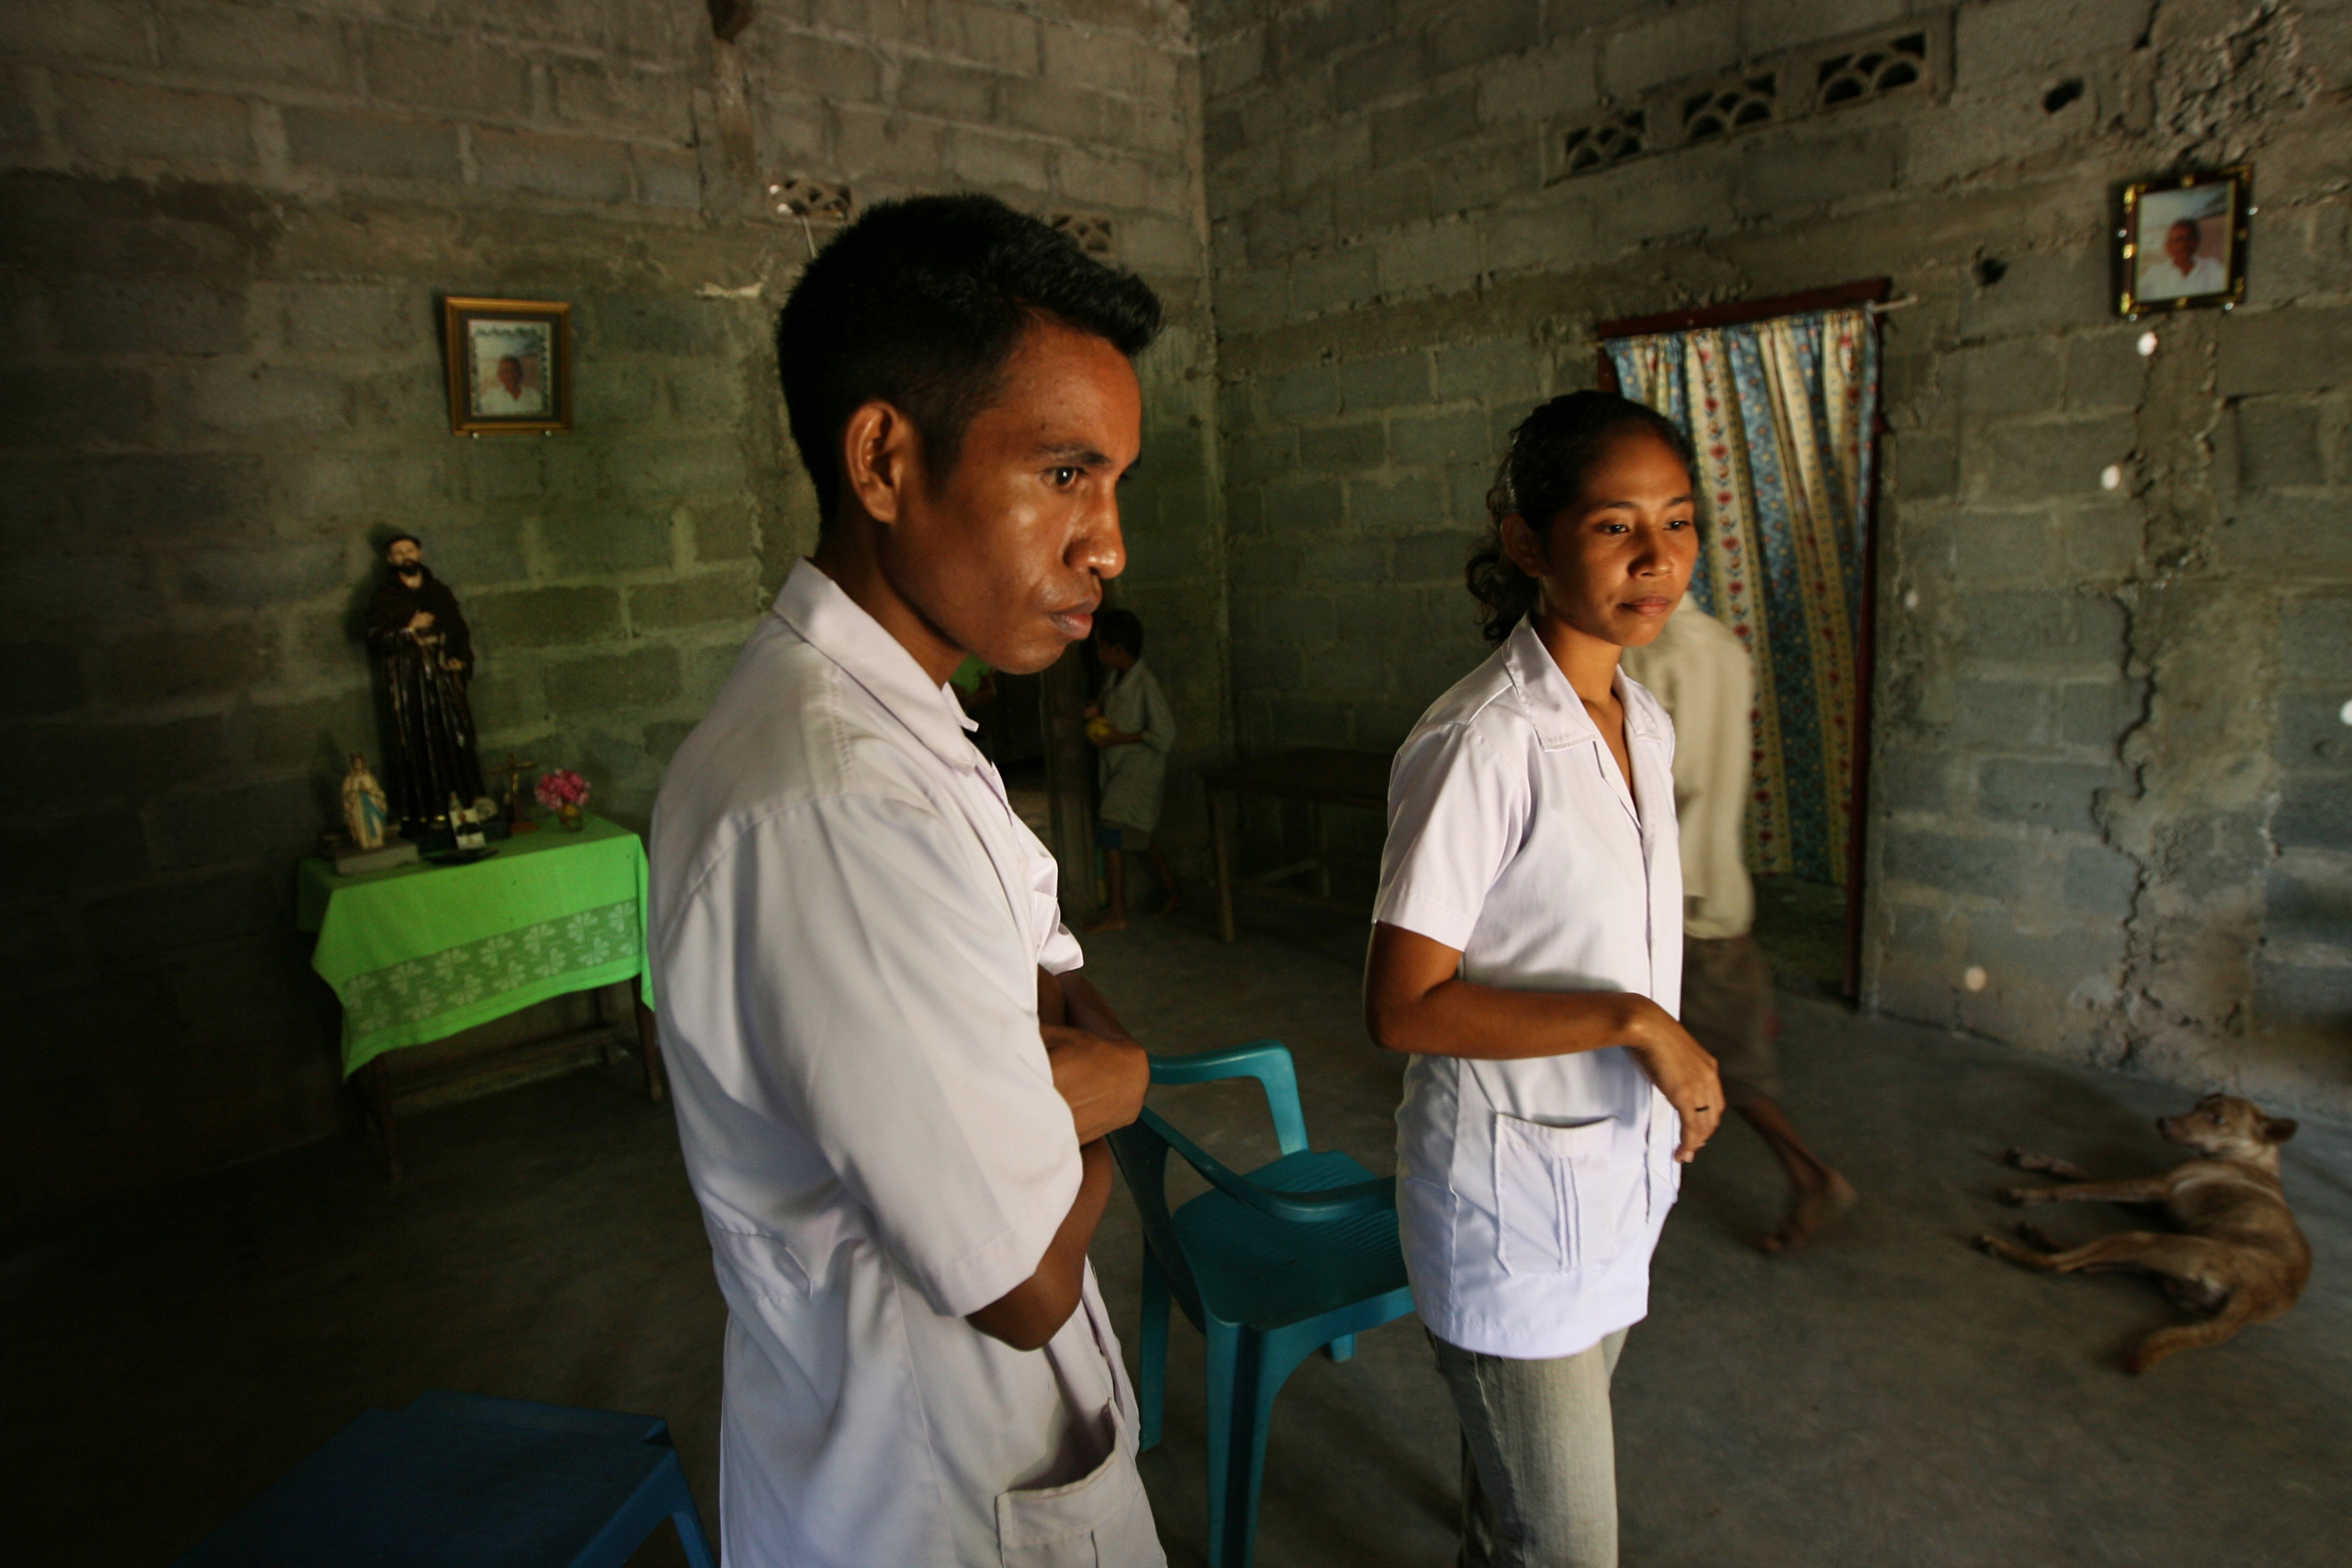 Trainee doctors educate people on the health benefits of good hygiene and sanitation in local villages in Timor Leste. Photo by Dean Sewell, WaterAid.